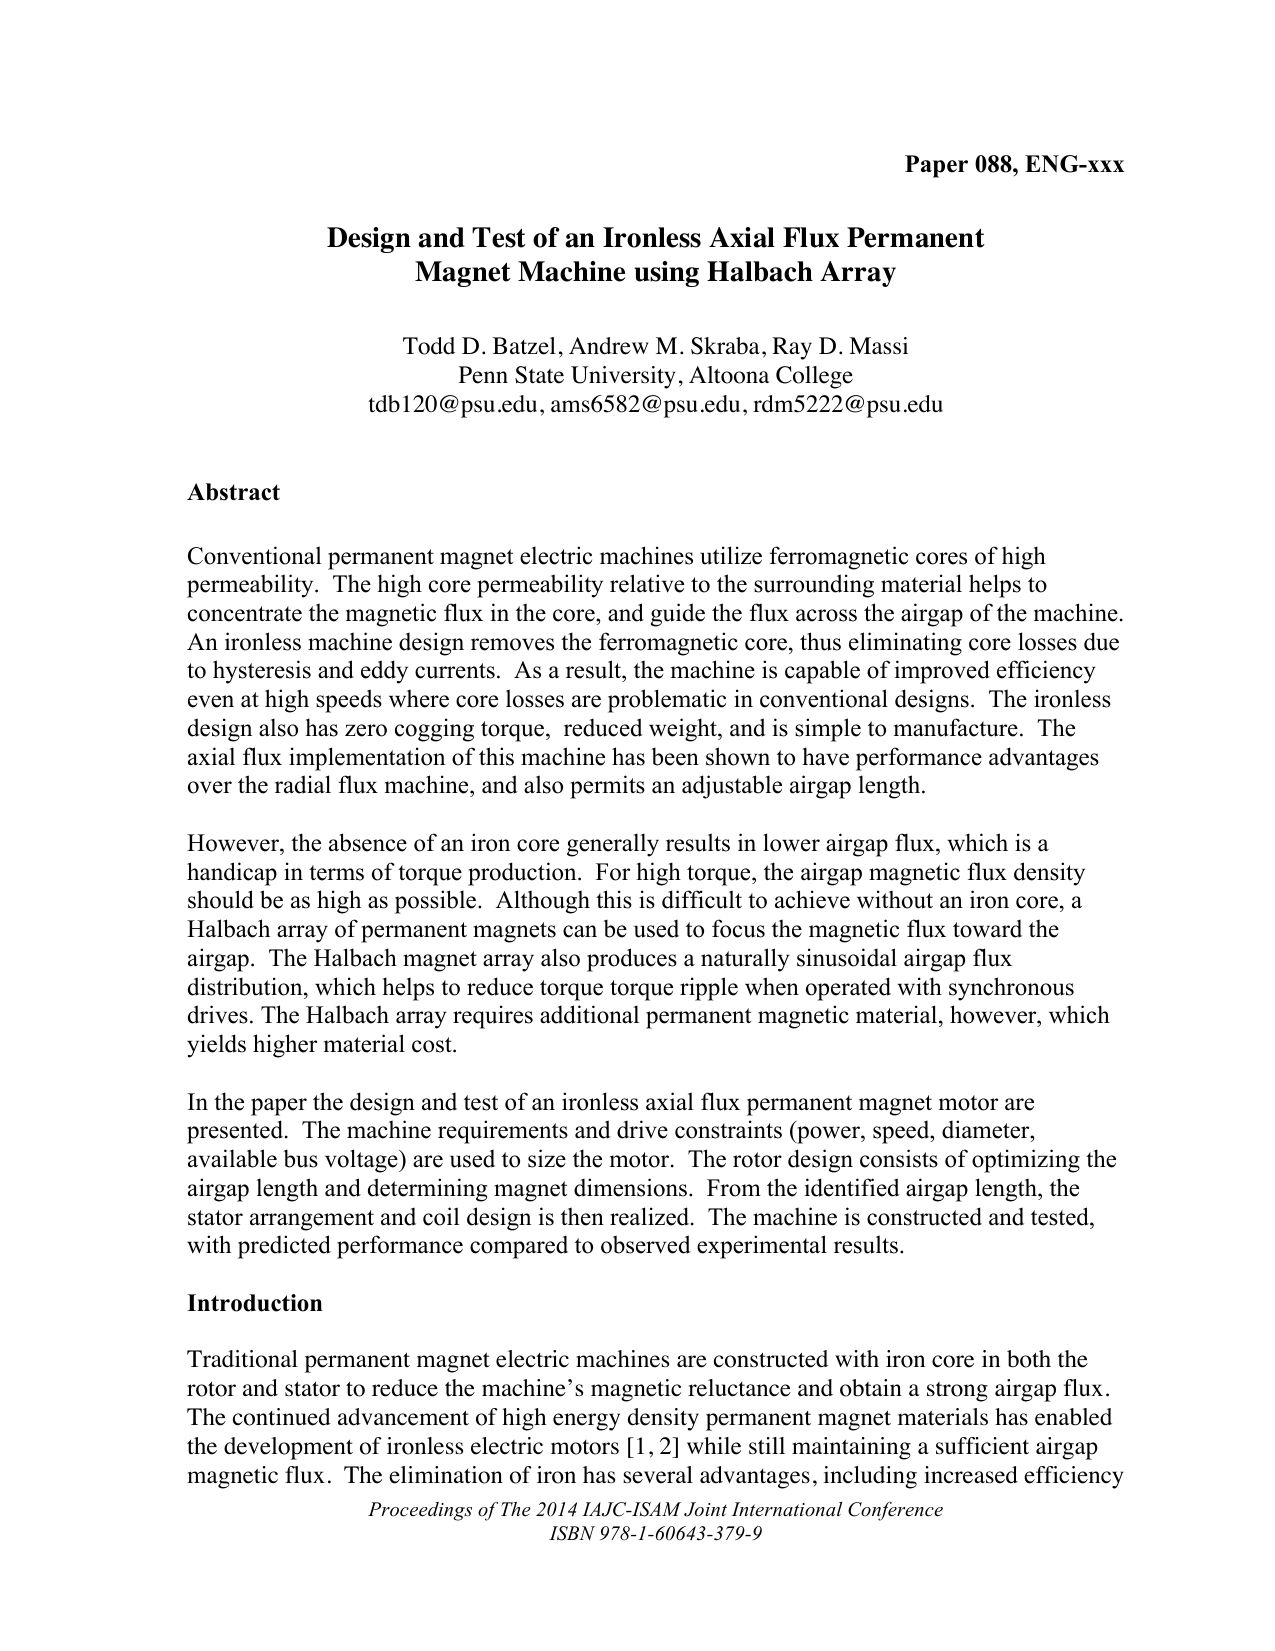 Design and Test of an Ironless Axial Flux Permanent Magnet